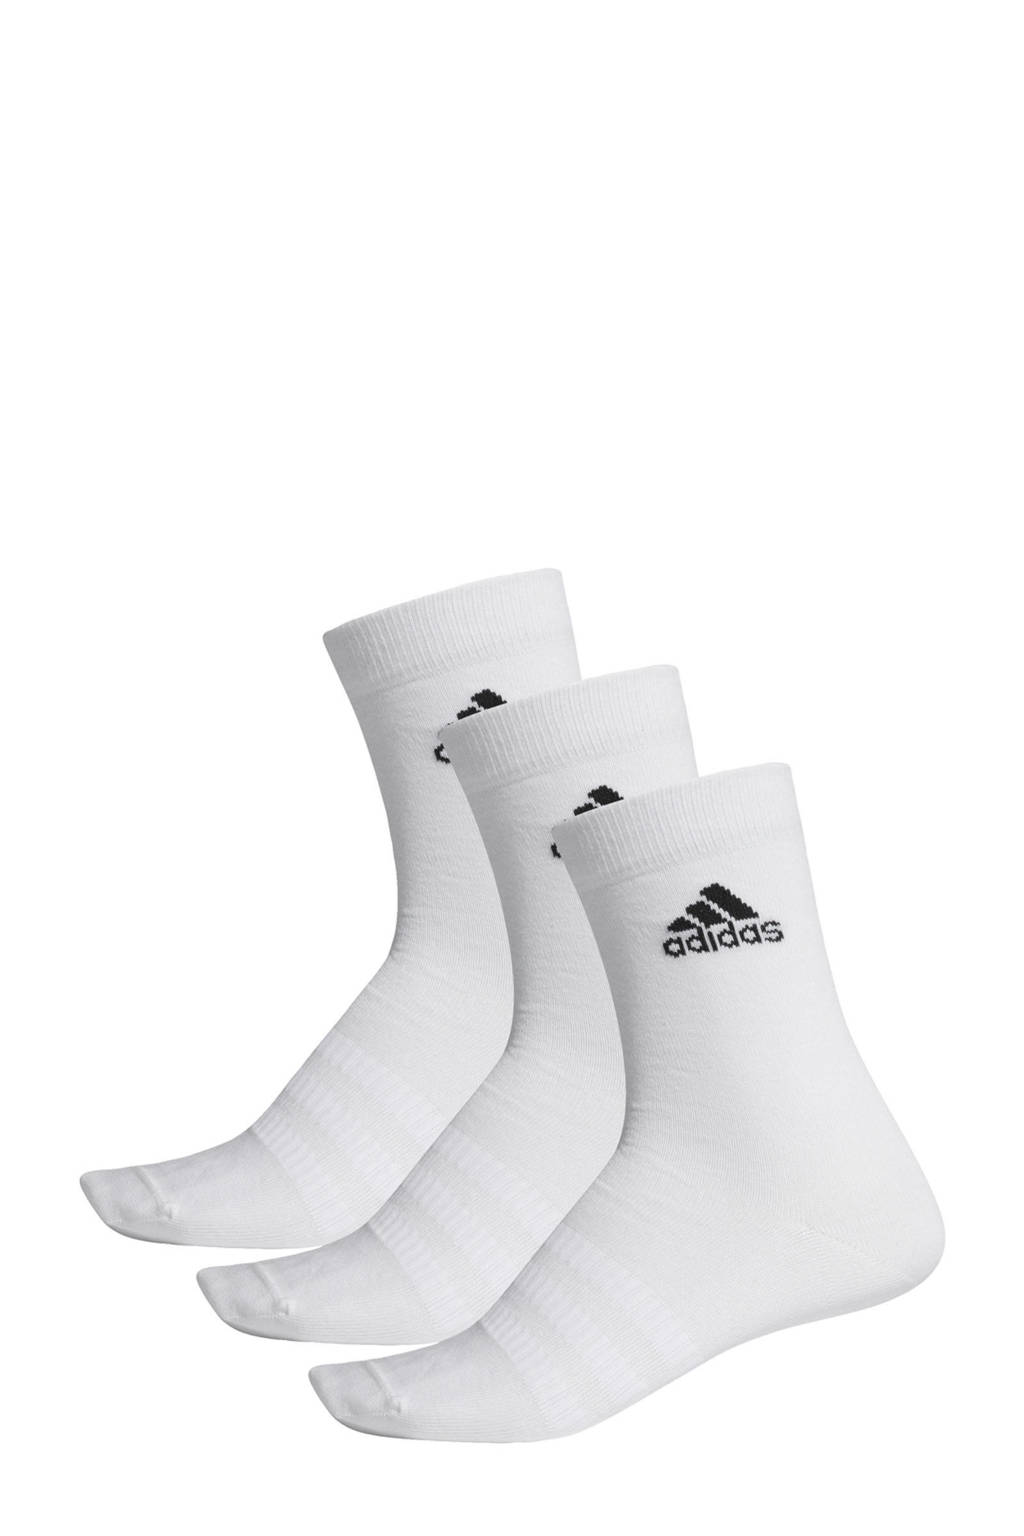 adidas Performance   sportsokken (set van 3) wit, Wit